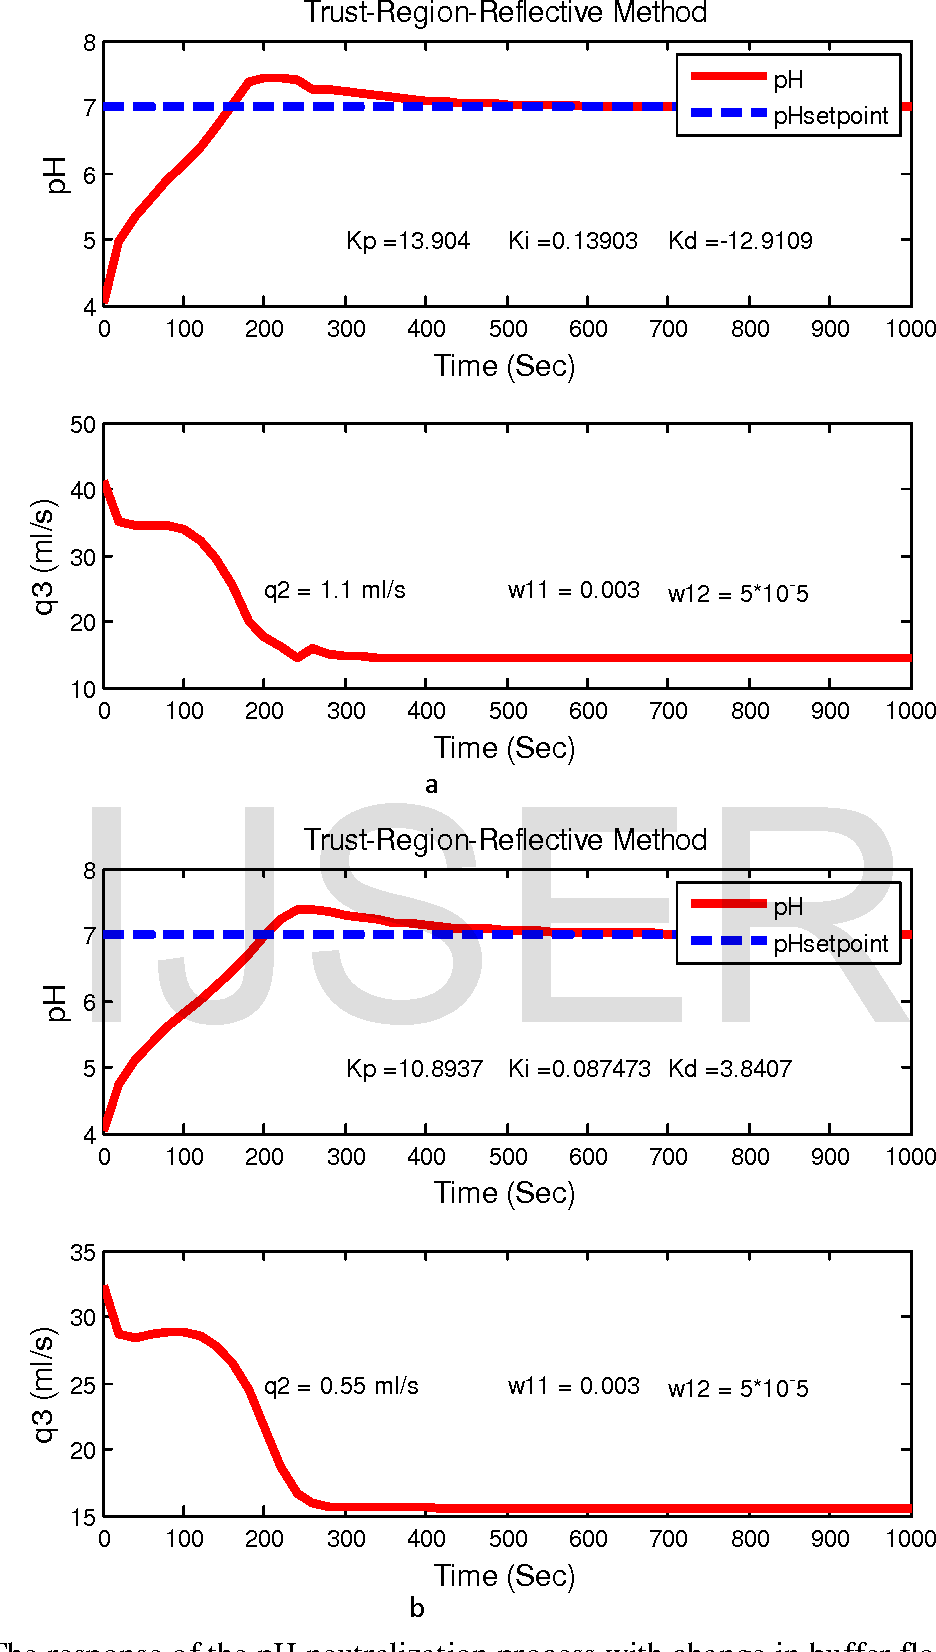 Fig. 4 The response of the pH neutralization process with change in buffer flow rate (q2)